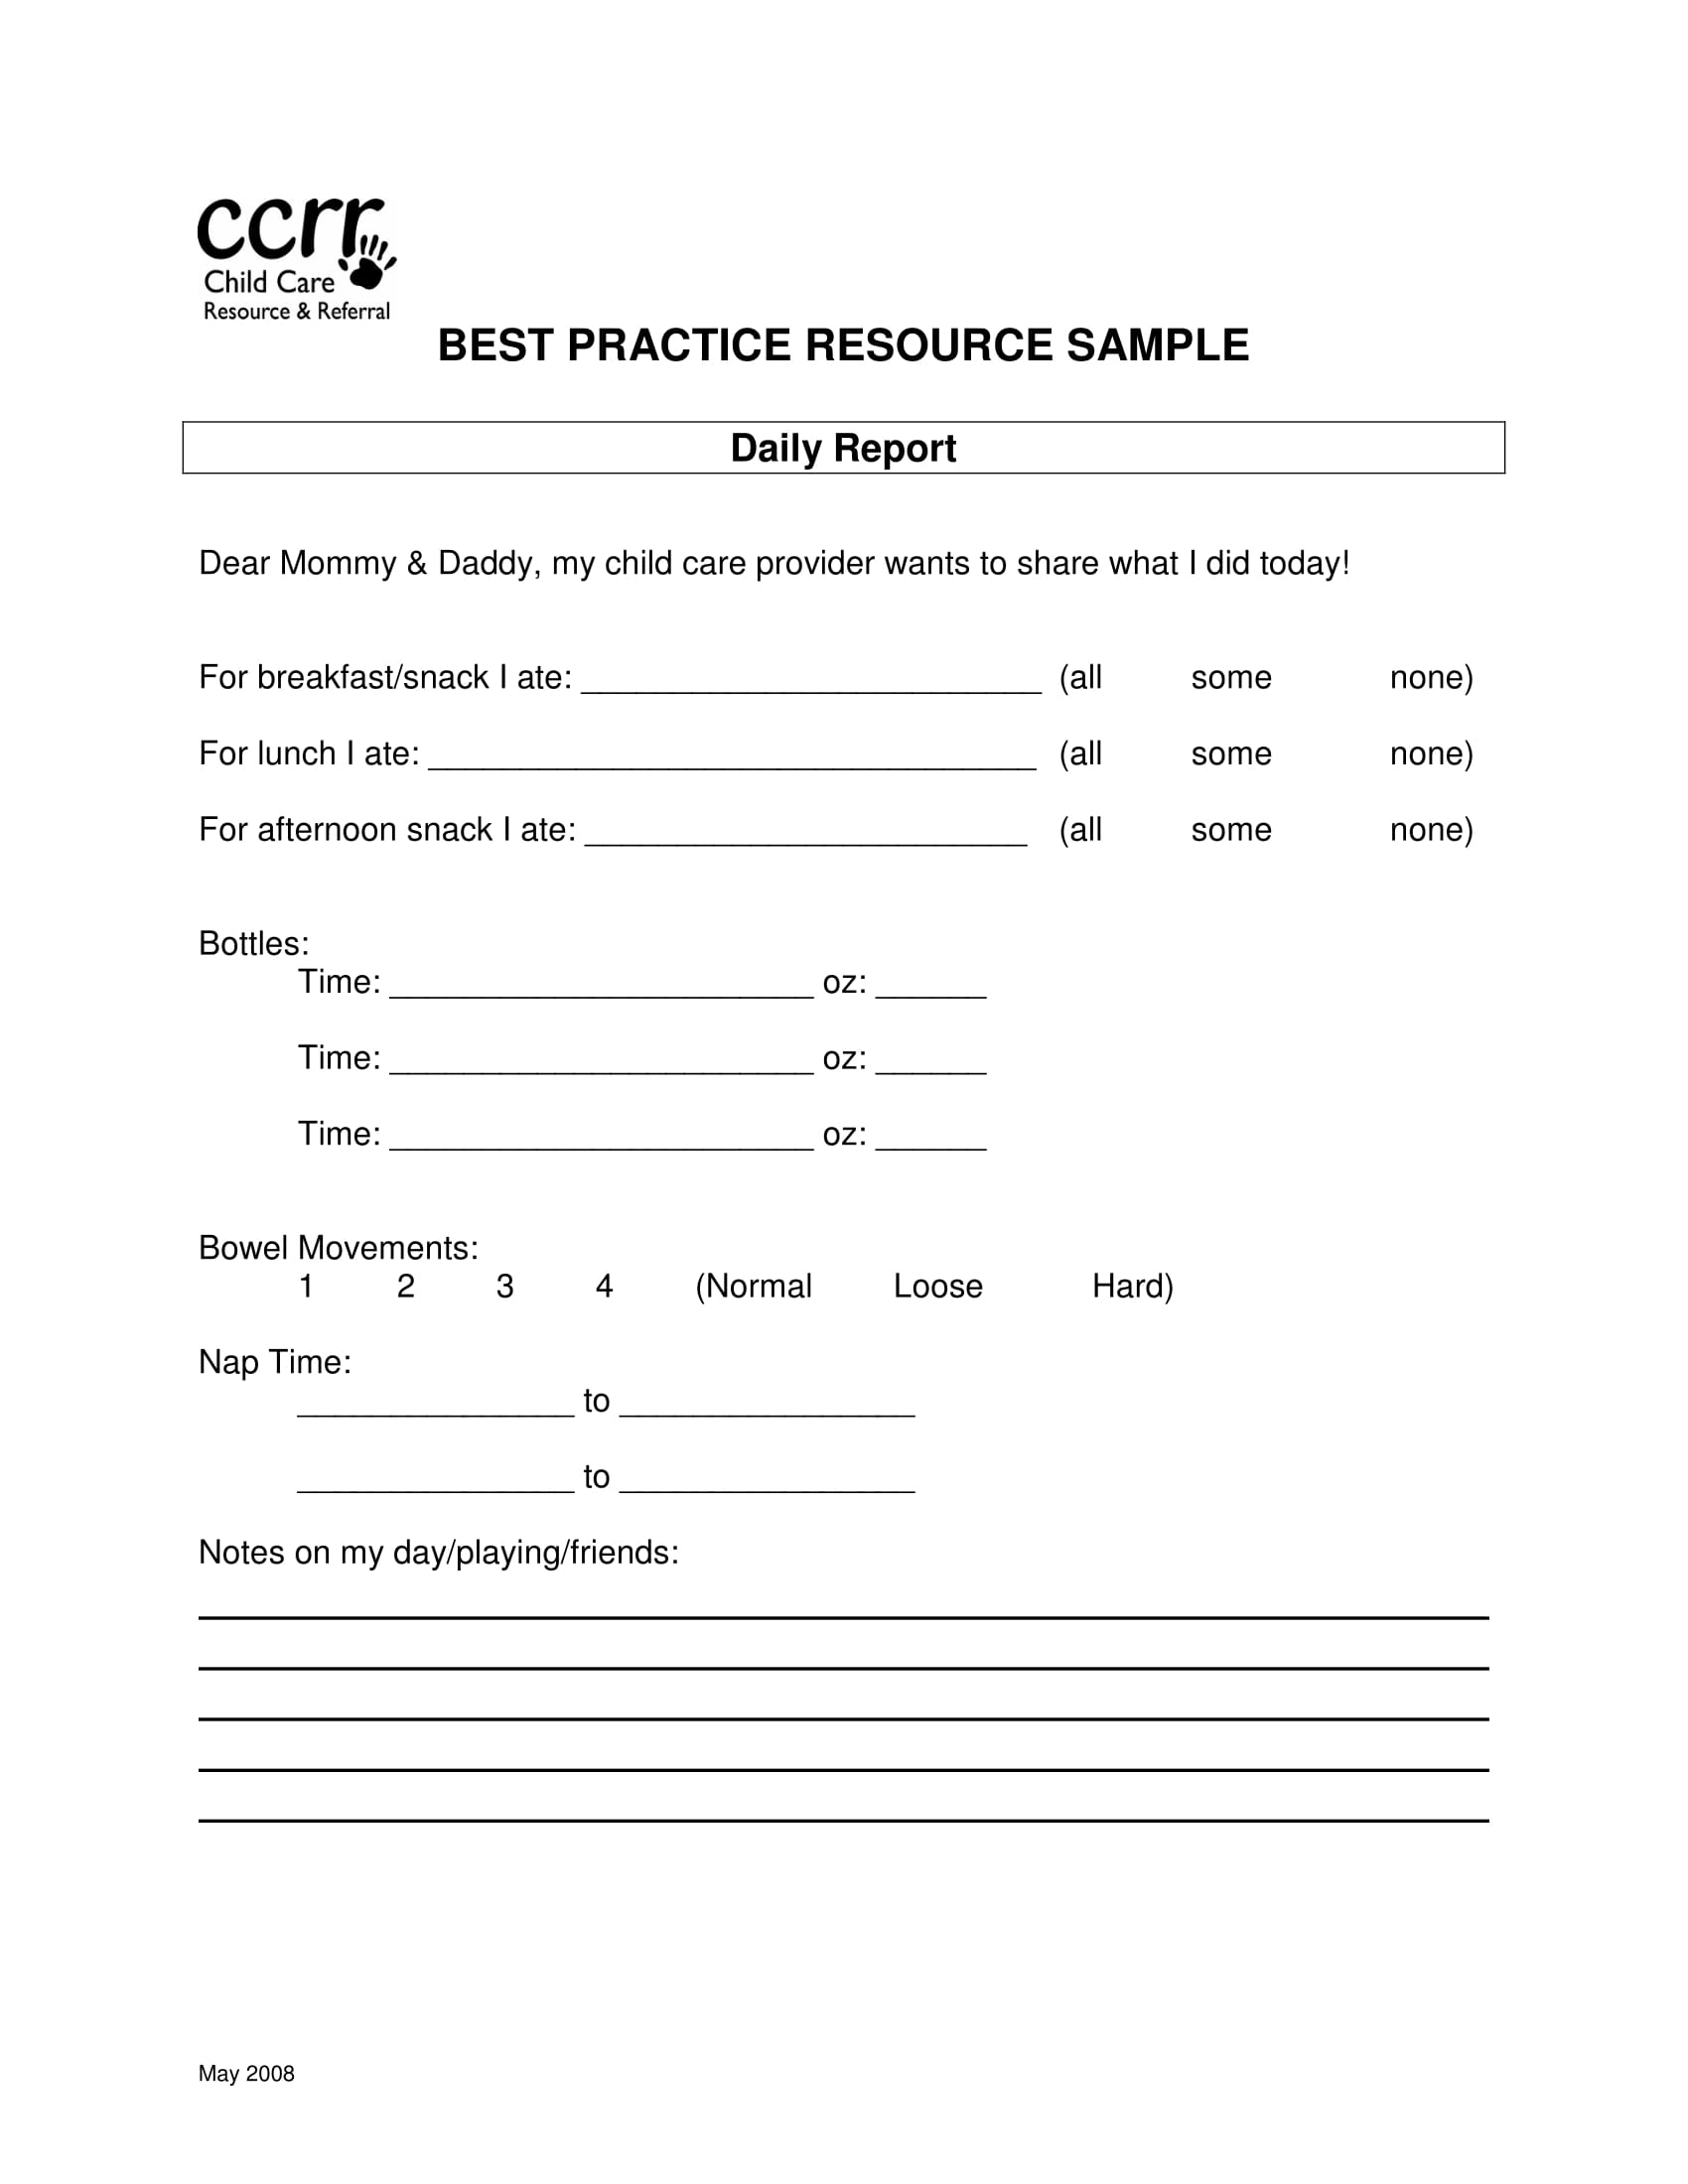 daycare child daily report information form 1